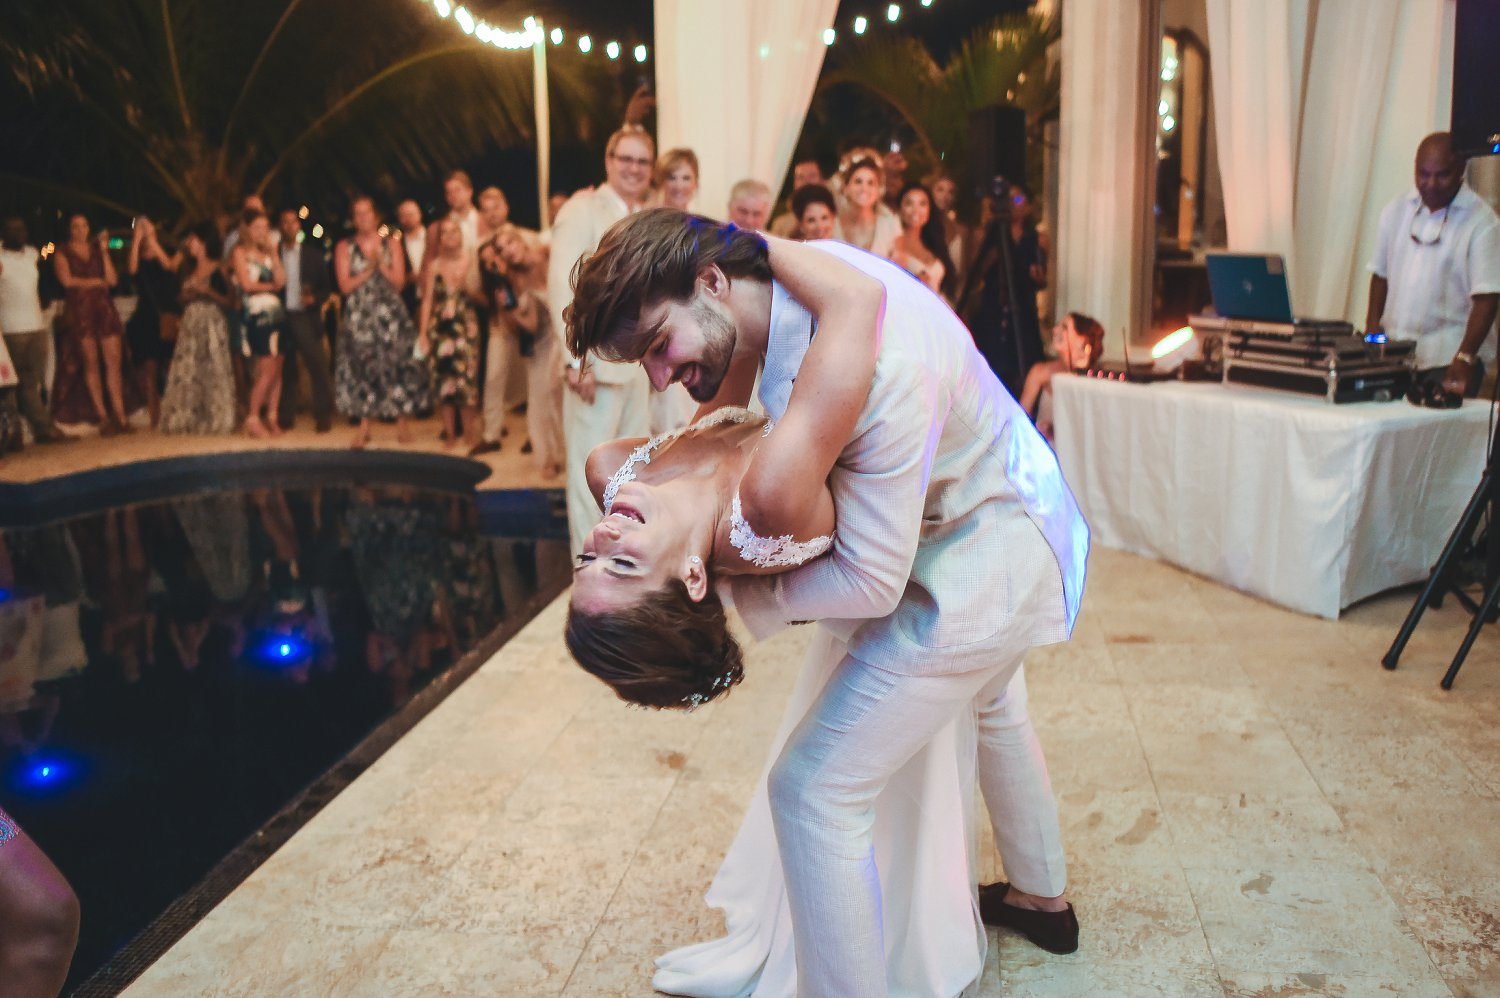 Groom dips bride during first dance beside pool at destination wedding.